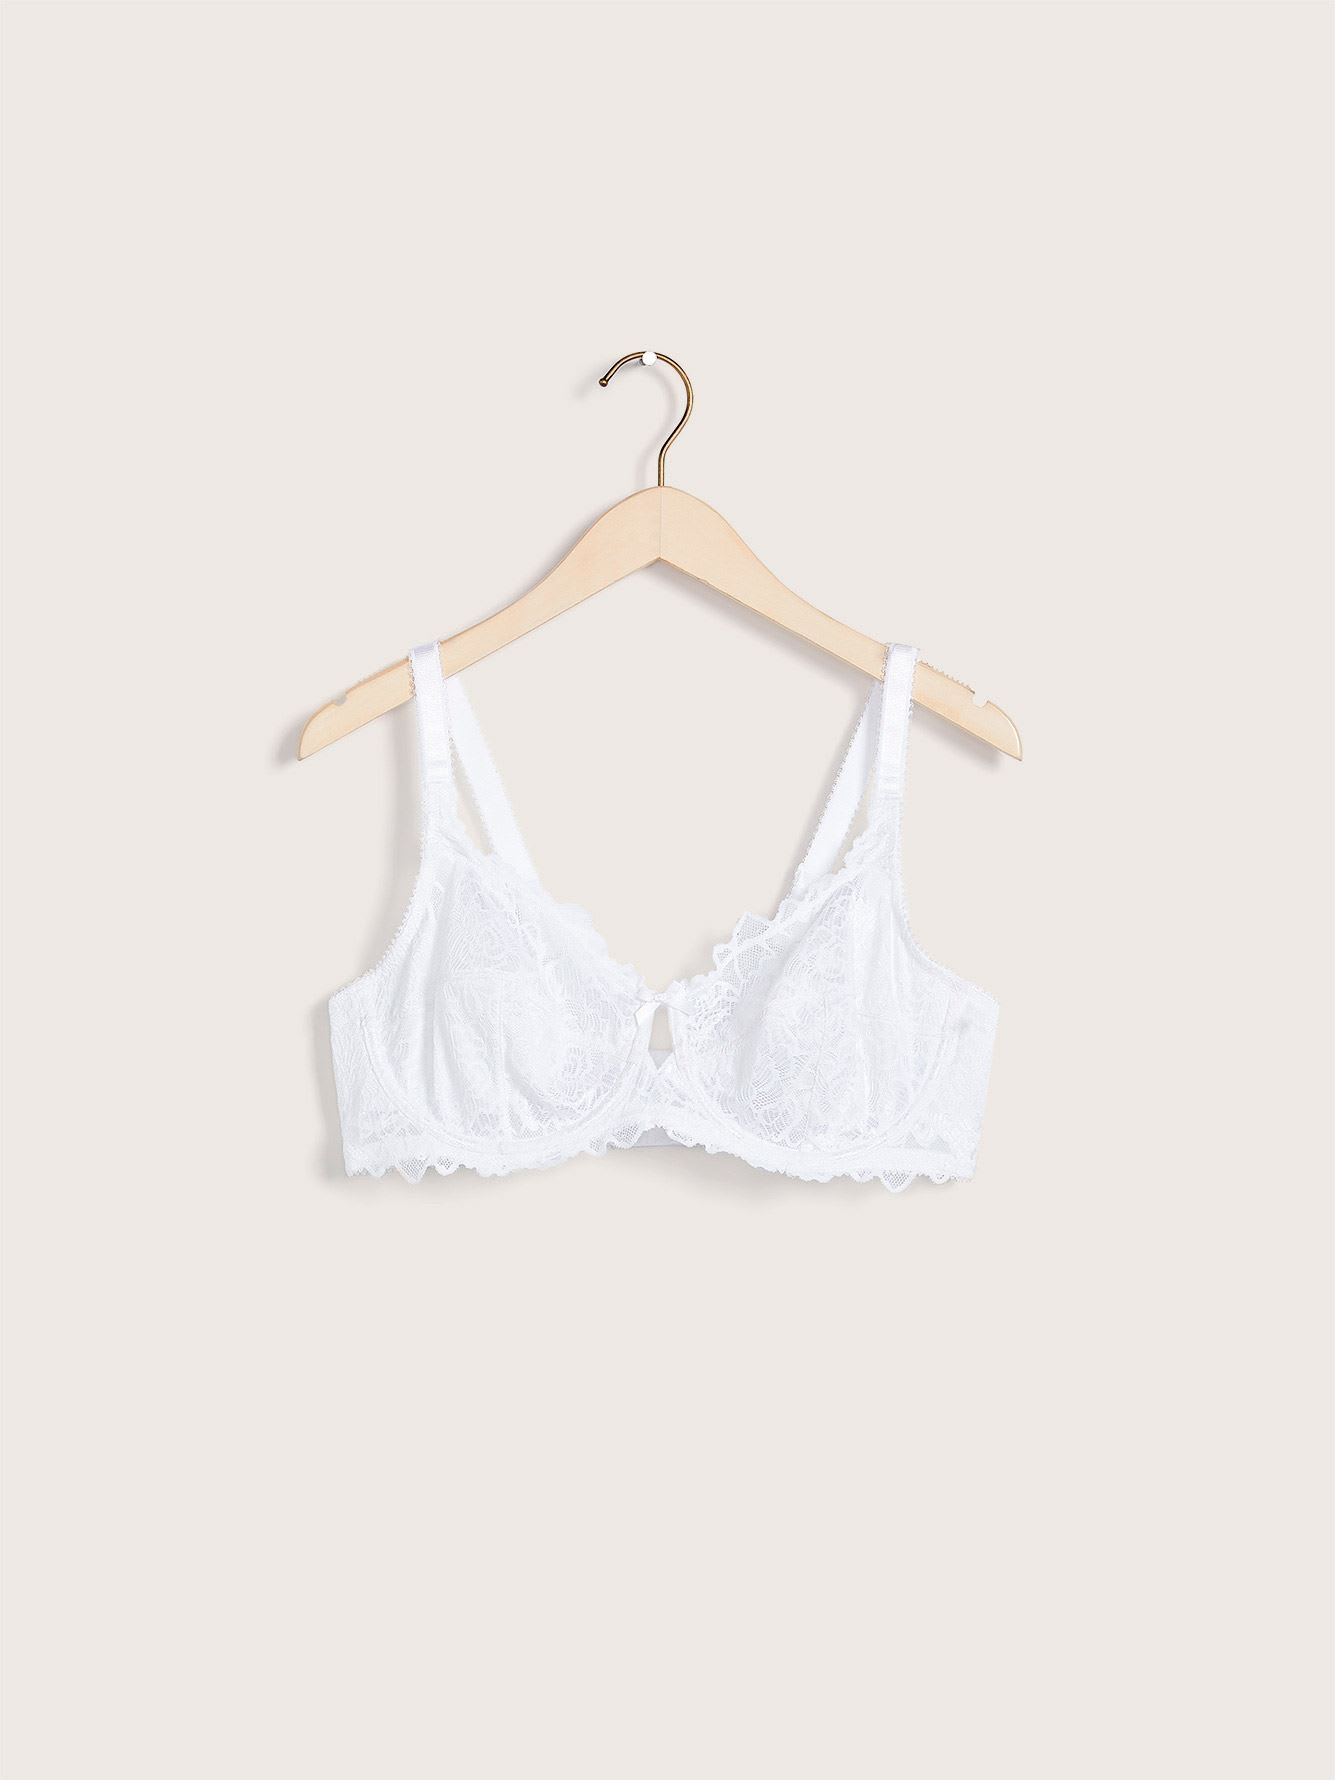 Unlined Lace Bra, G & H Cups